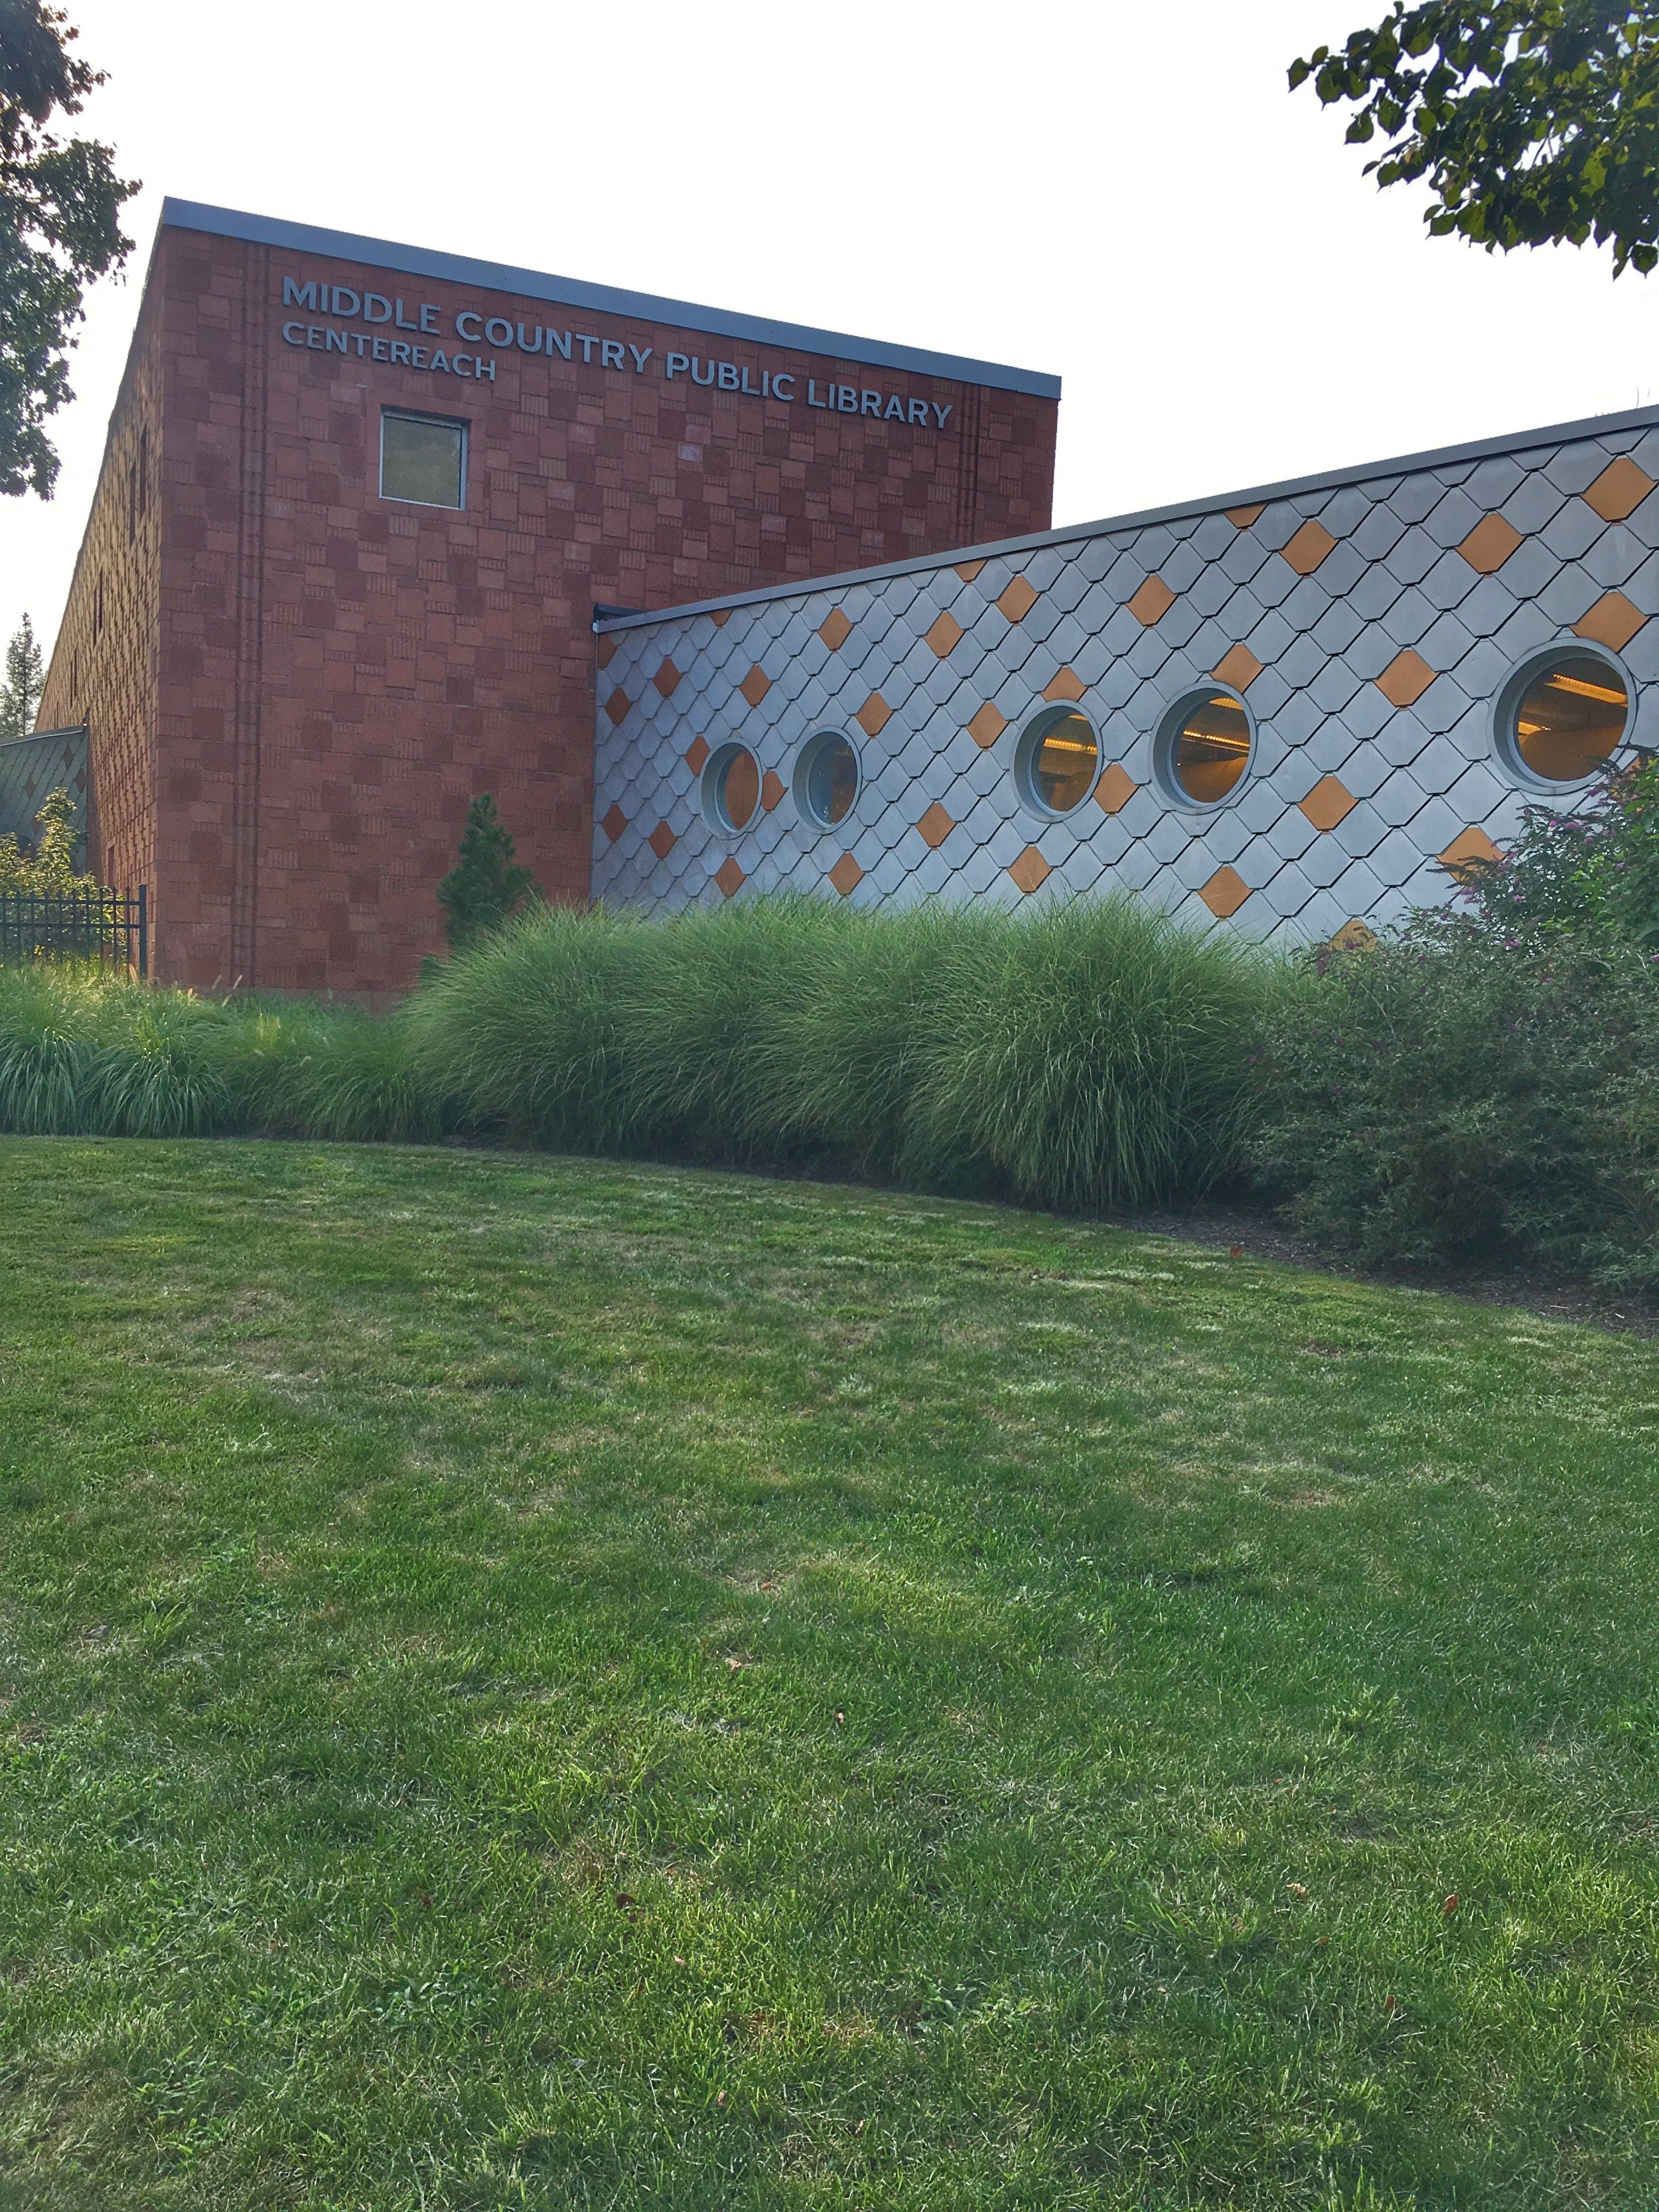 Middle-Country-Public-Library-Centereach-Suffolk-County-Long-Island-Small-Business-Resource-Building-Exterior.jpg